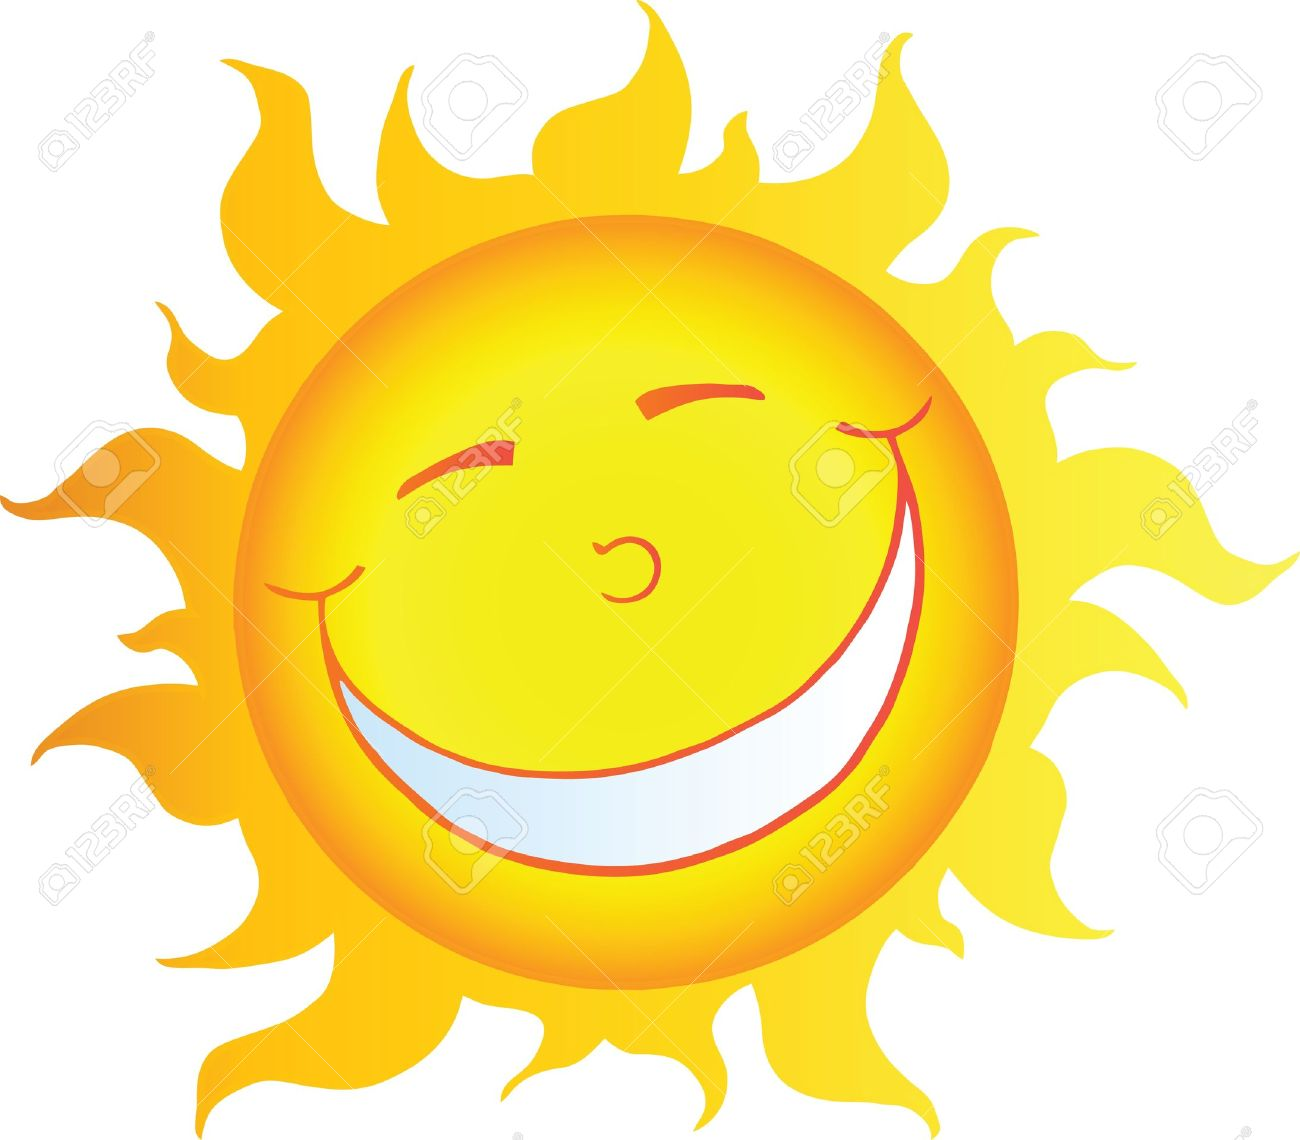 14575451-happy-smiling-sun-cartoon-character.jpg